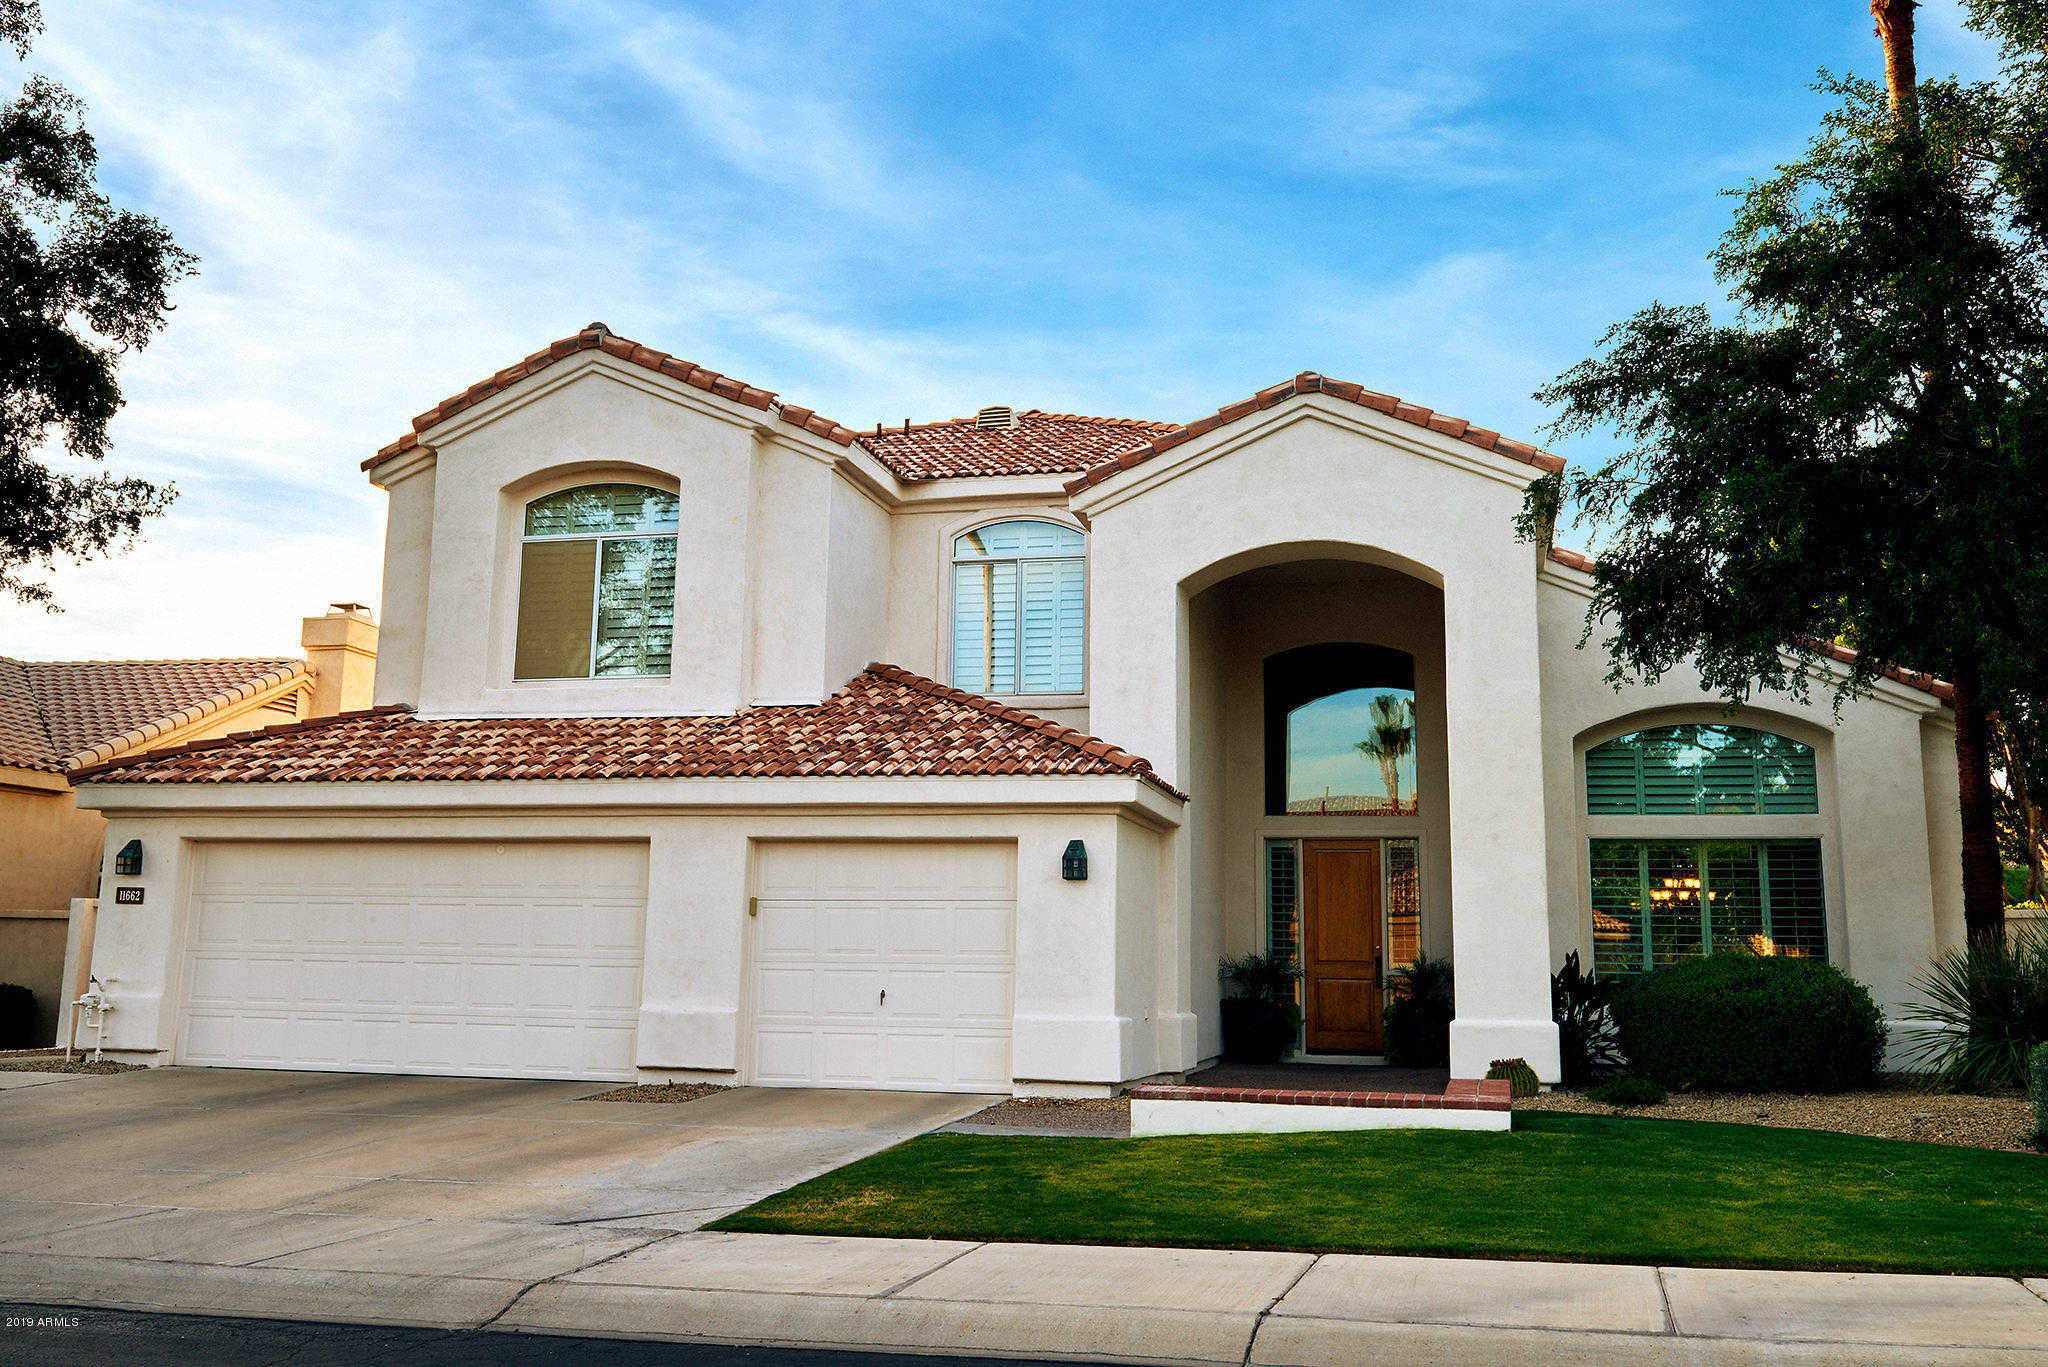 $647,000 - 4Br/3Ba - Home for Sale in Stonegate, Scottsdale